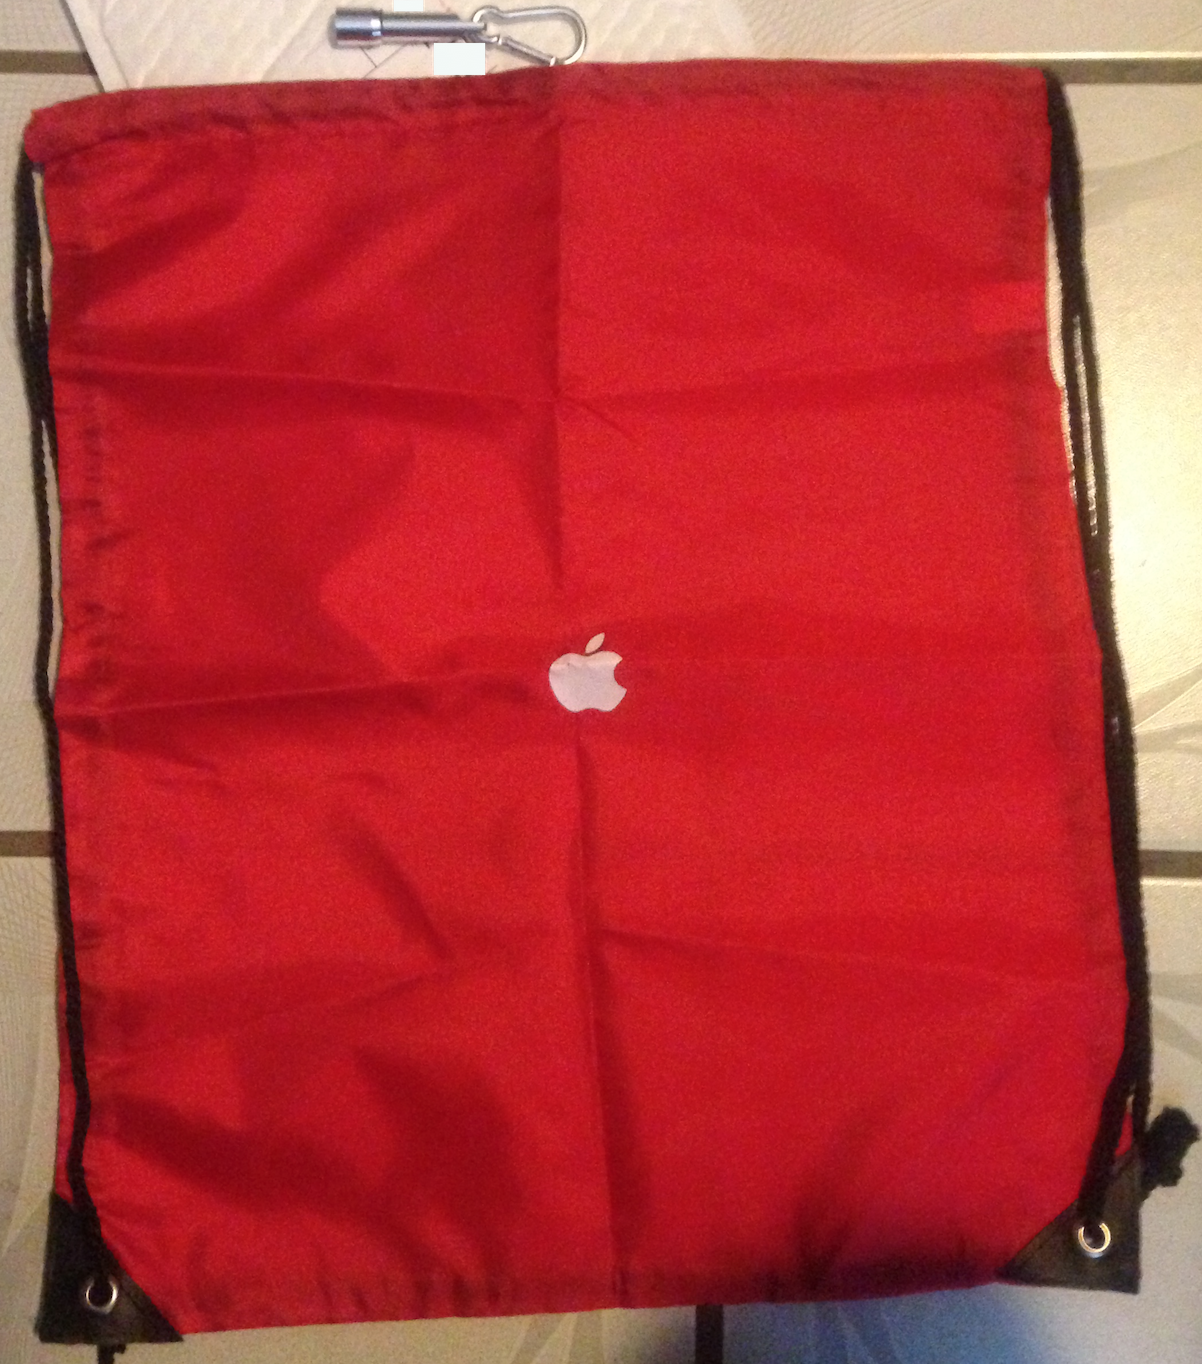 Apple employees get small gift: colorful bag & flashlight - 9to5Mac